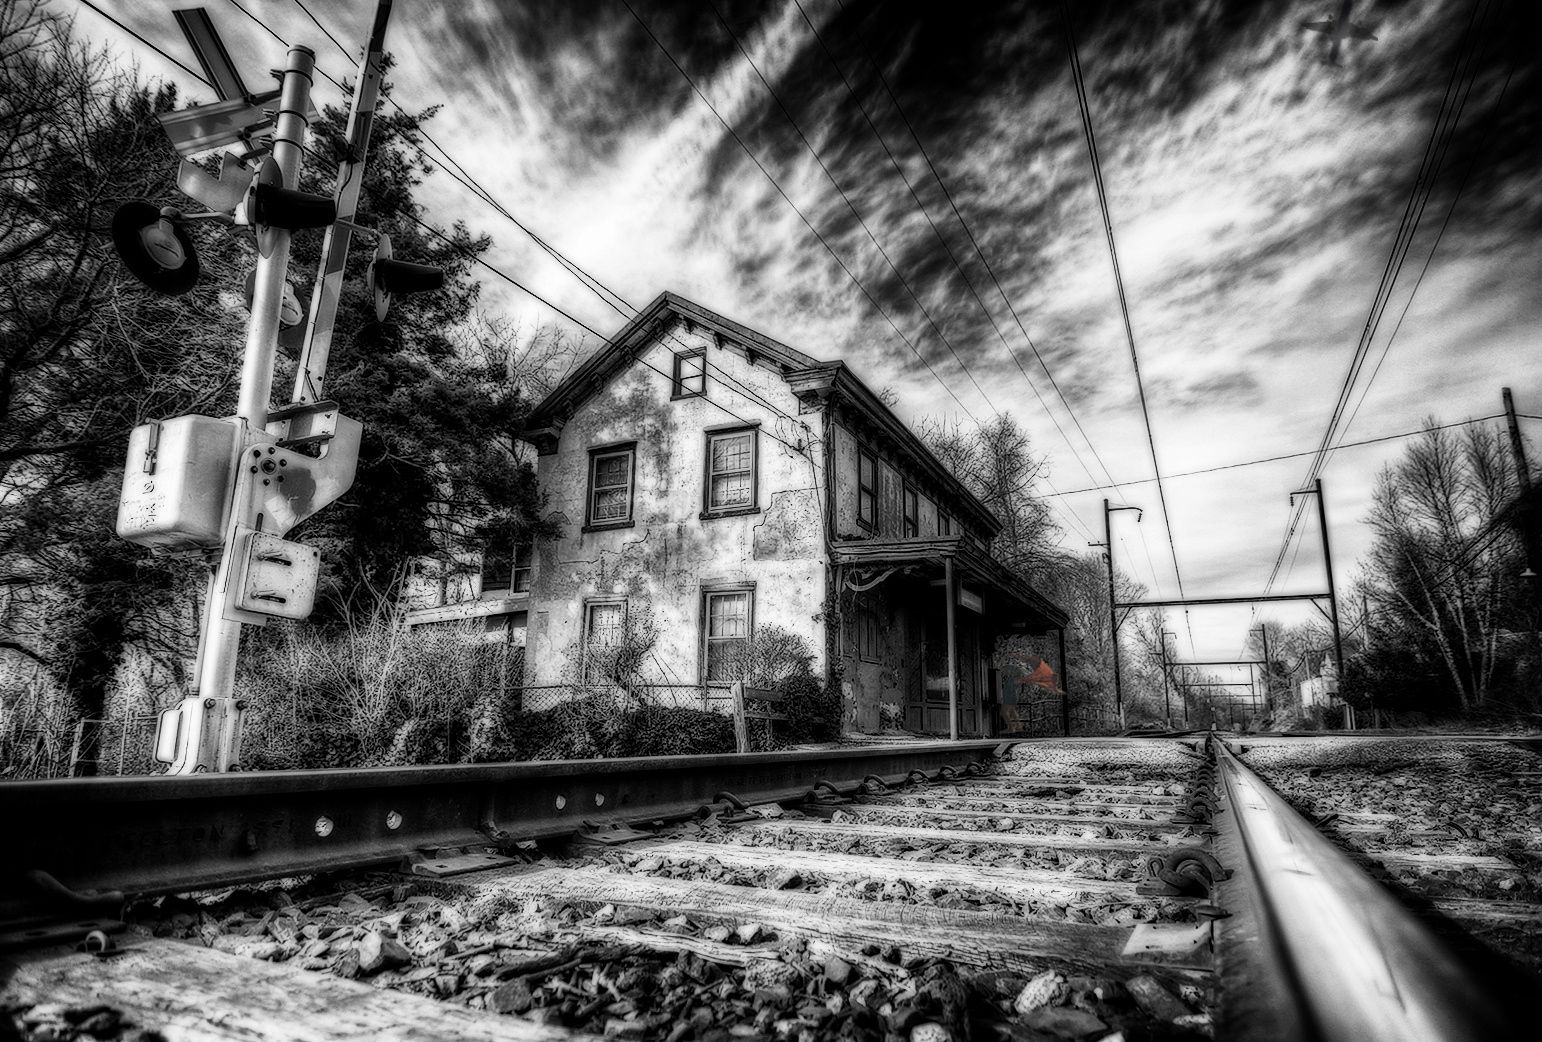 Station # 9 by Todd Wall on 500px